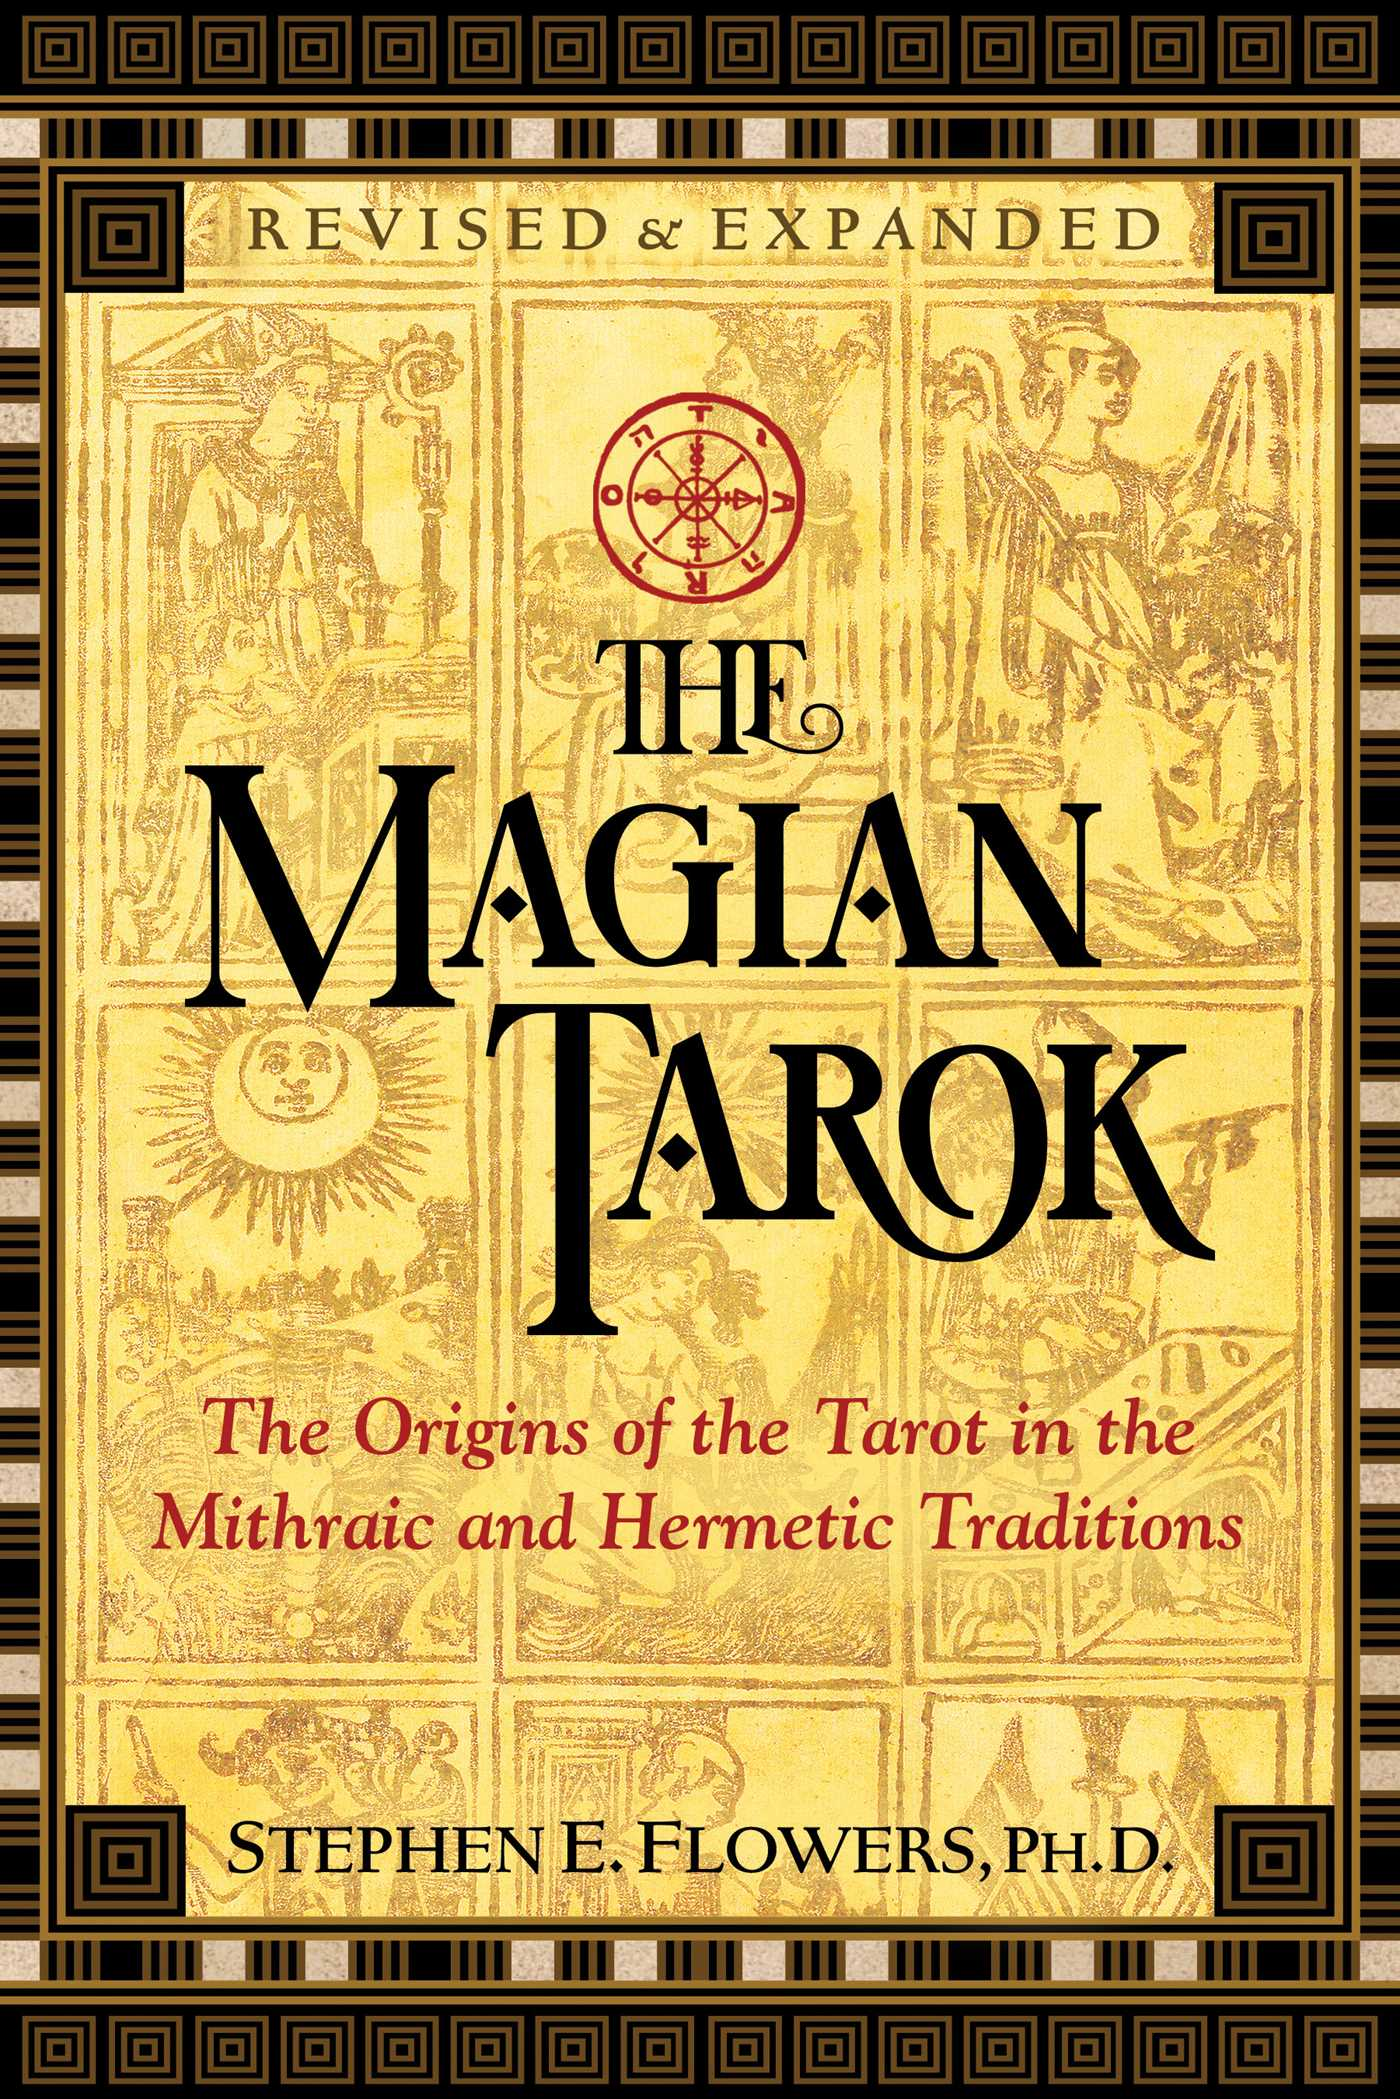 The Magian Tarok (Stephen E Flowers)